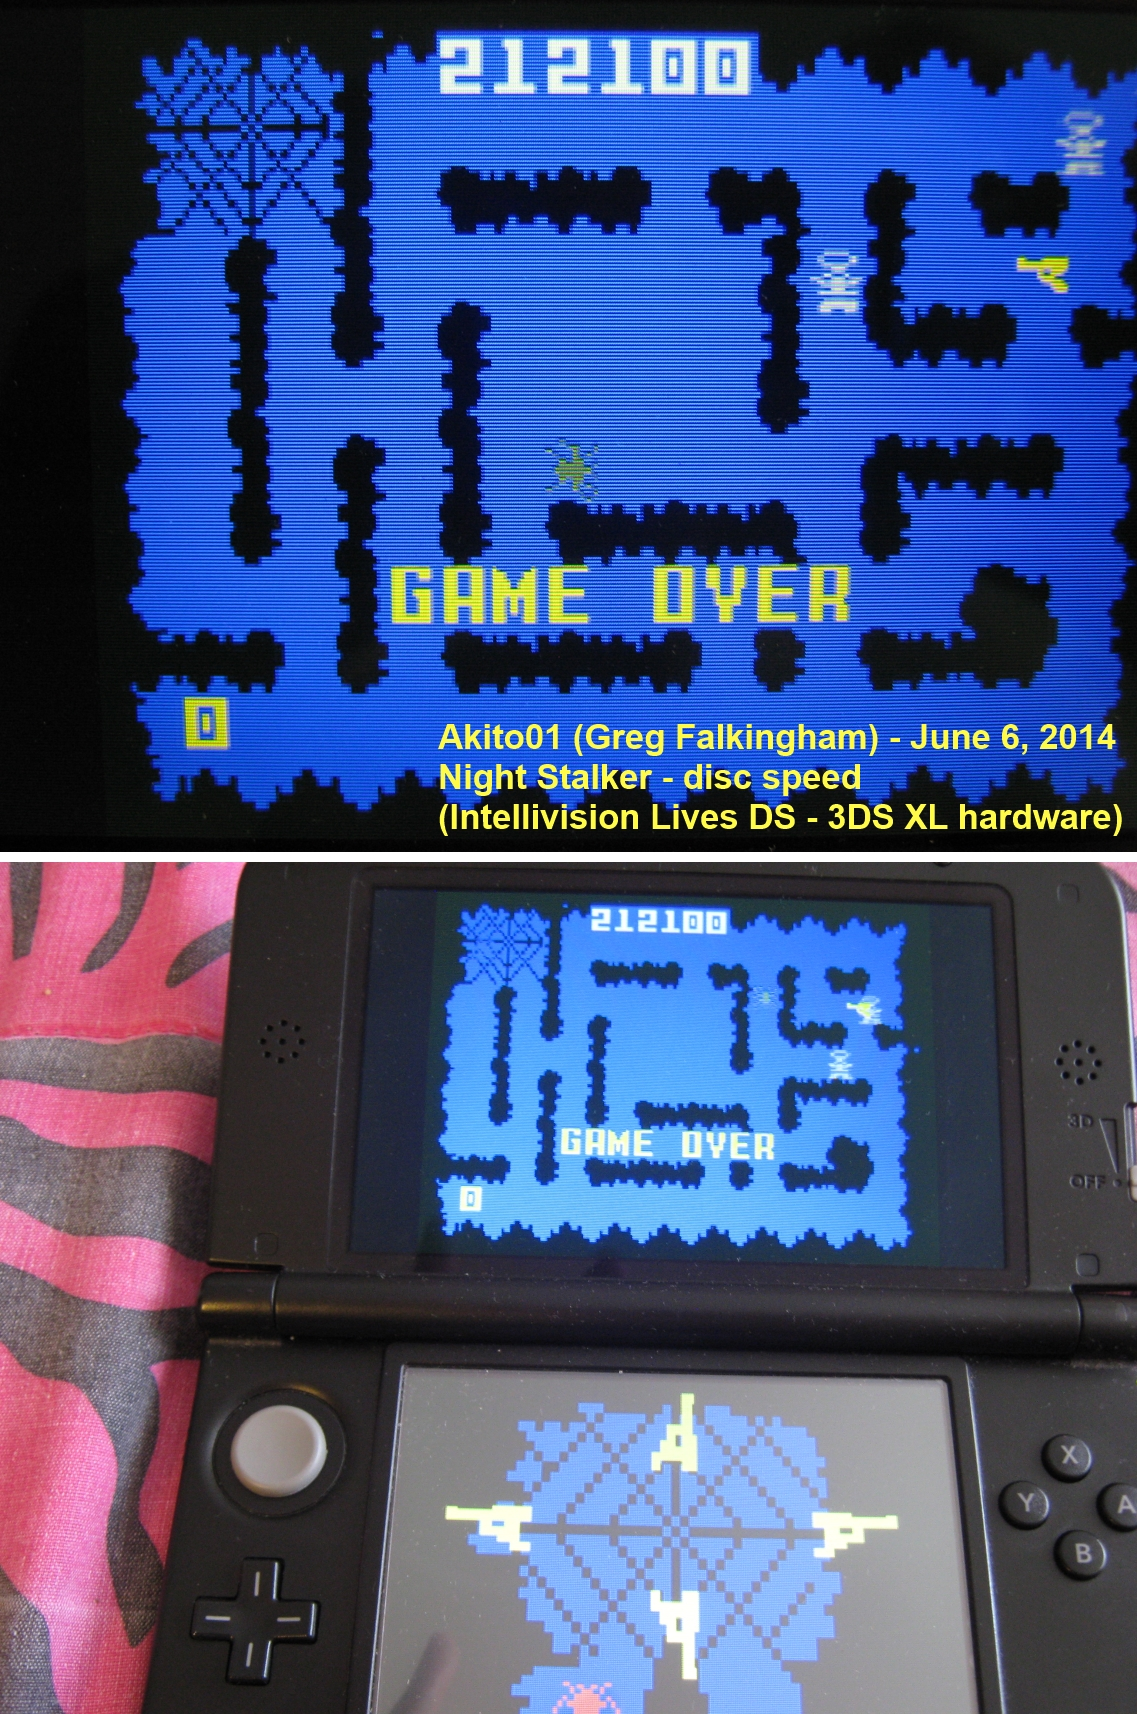 Akito01: Intellivision Lives: Night Stalker (Nintendo DS) 212,100 points on 2014-06-06 15:30:09